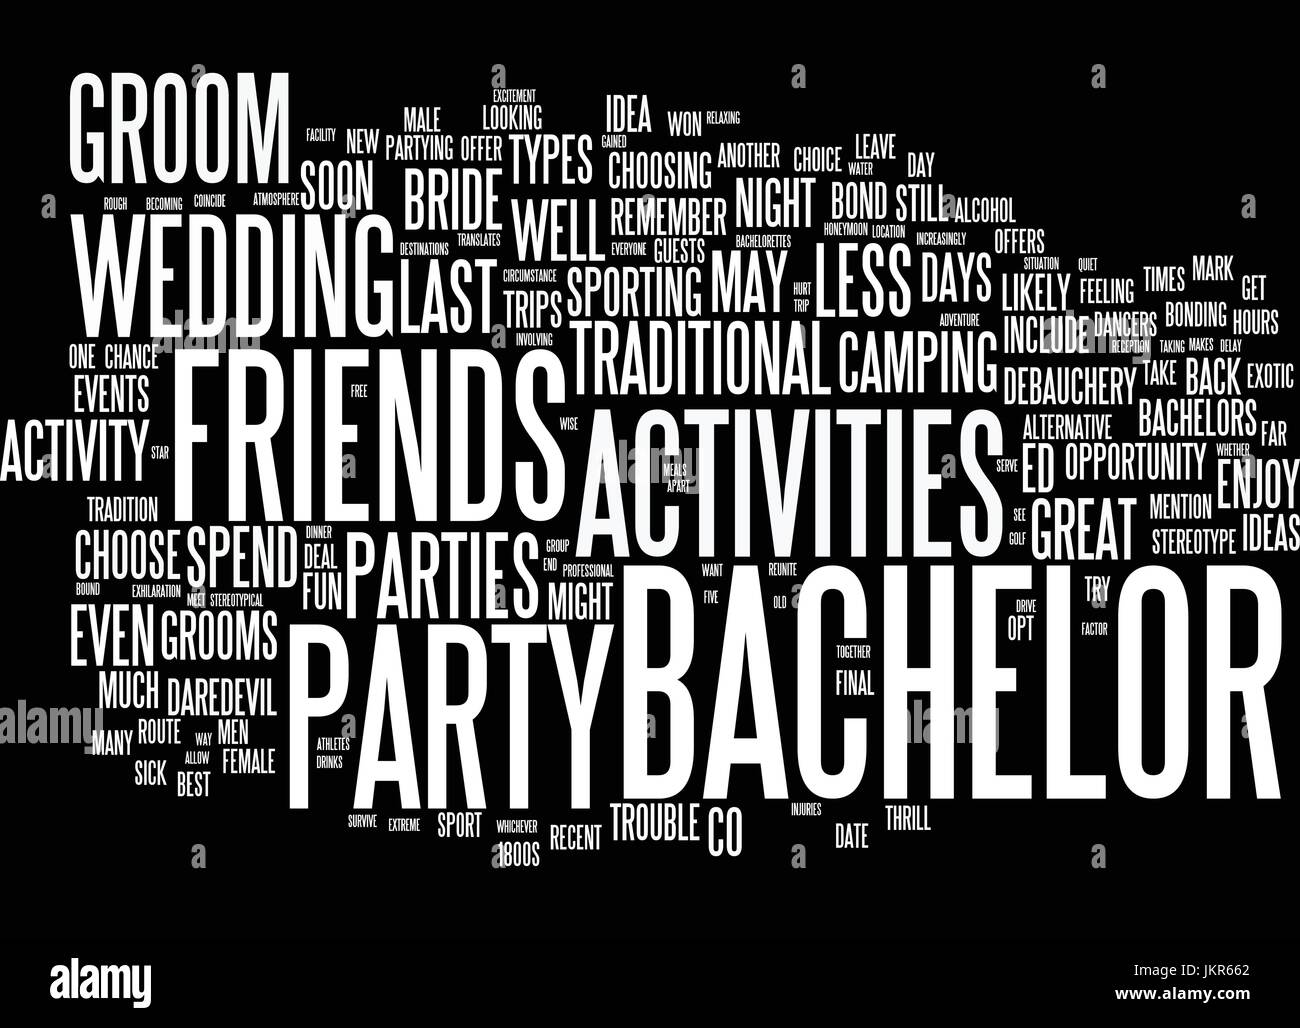 the best bachelor party ideas text background word cloud concept